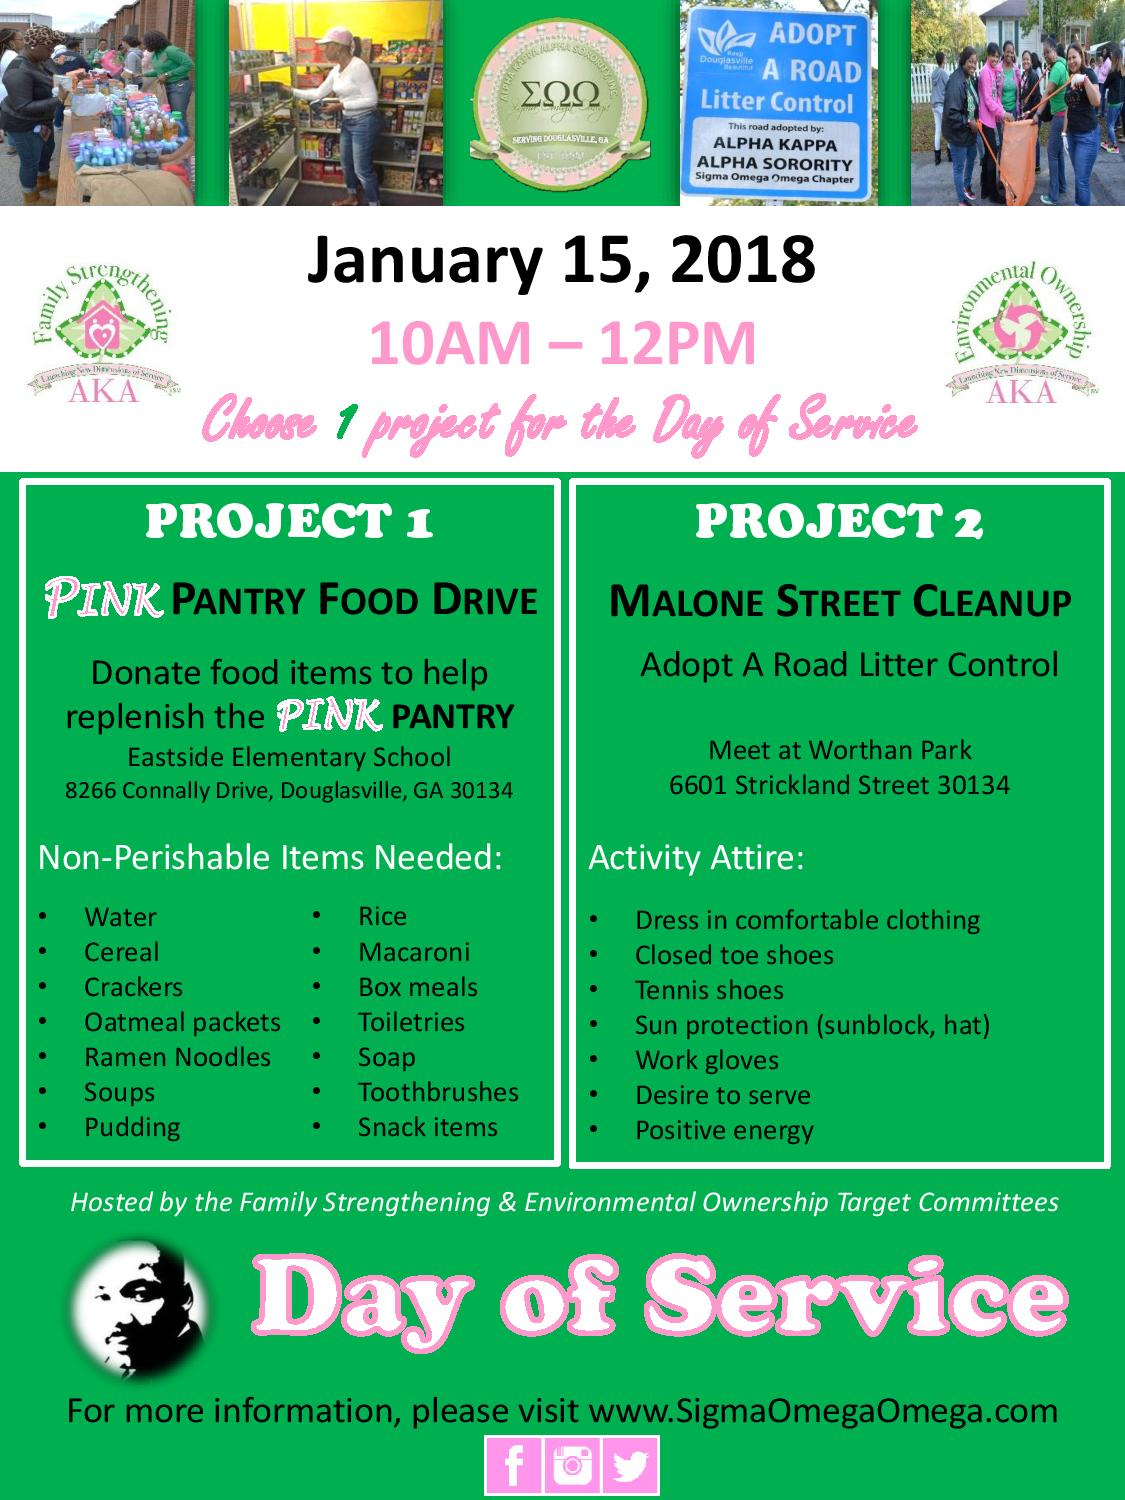 JAN152018- MLK Day of Service-jpg